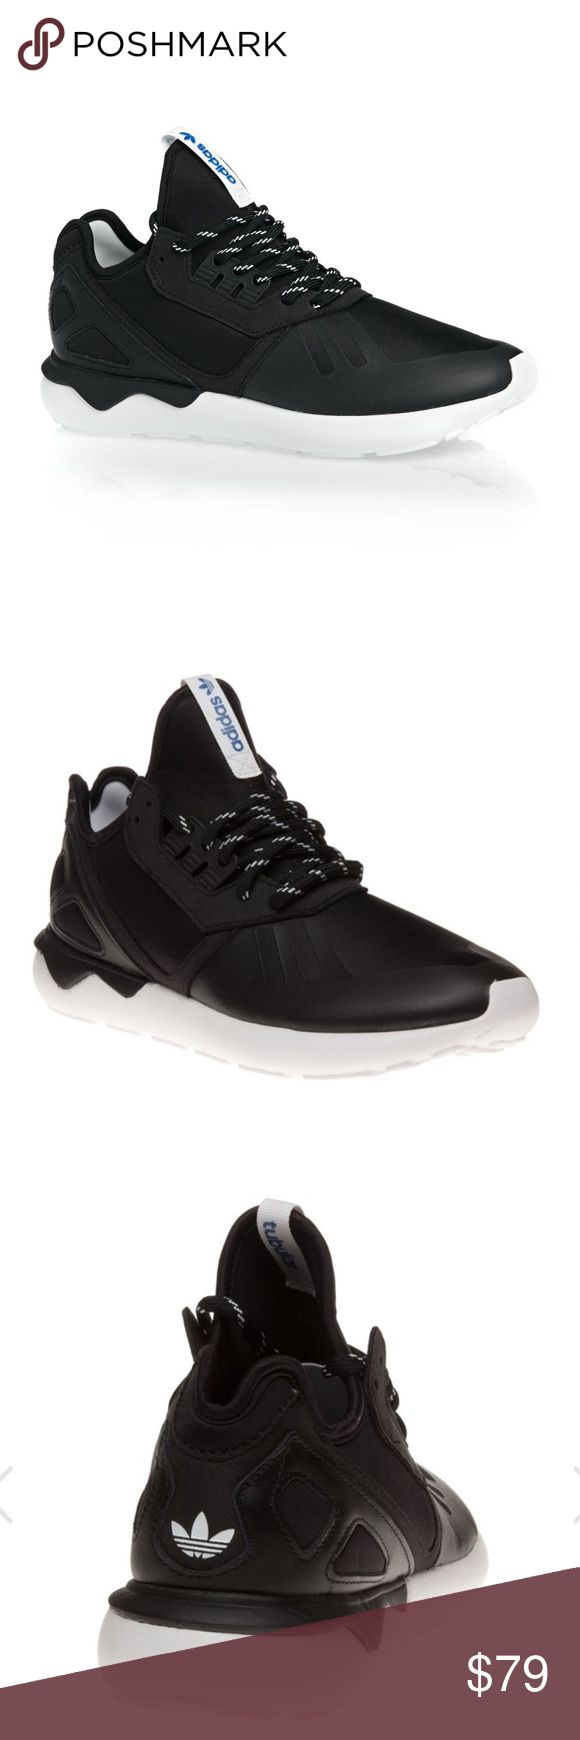 Adidas Tubular Original Runner Shoes Size 12 Men's The Tubular Runner from adidas is a contemporary sneaker in a breathable, lightweight silhouette. Black nylon uppers feature suede overlays and a branded heel stabiliser creating signature athletic edge. EVA tube sole completes this retro upgrade. adidas Shoes Athletic Shoes